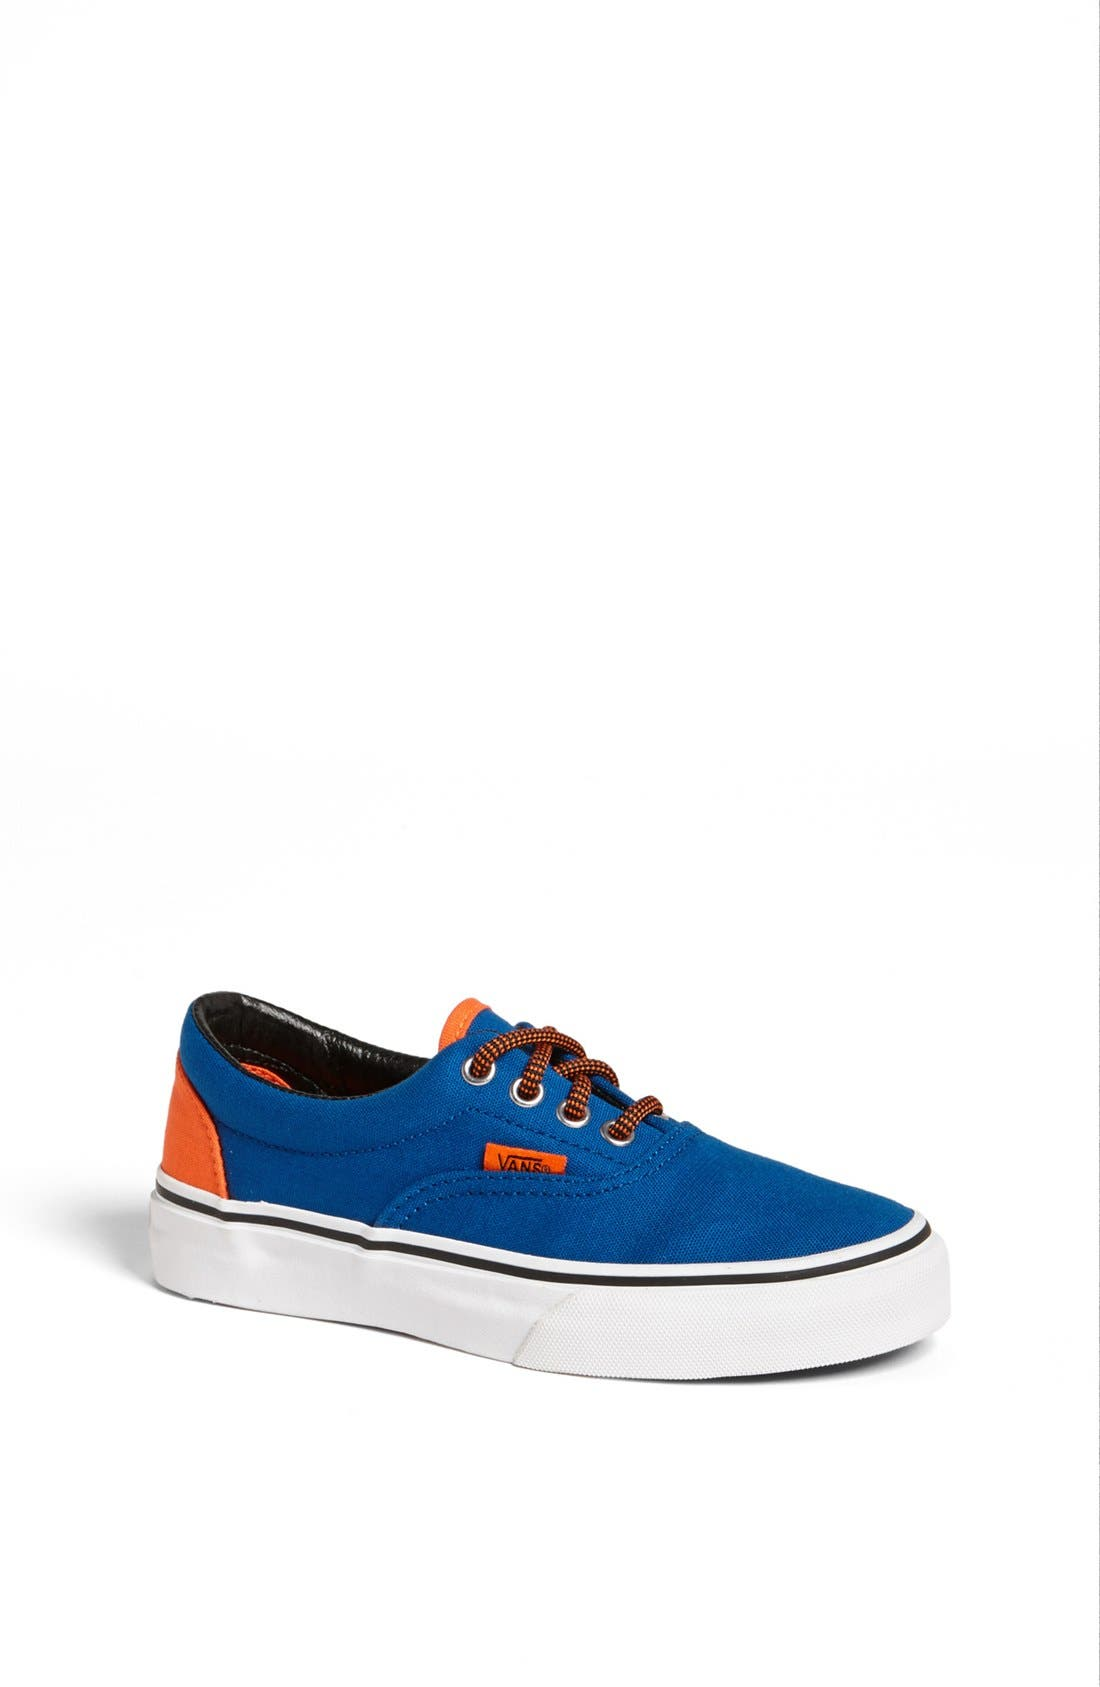 Alternate Image 1 Selected - Vans 'Era - Heel Pop' Sneaker (Toddler, Little Kid & Big Kid)